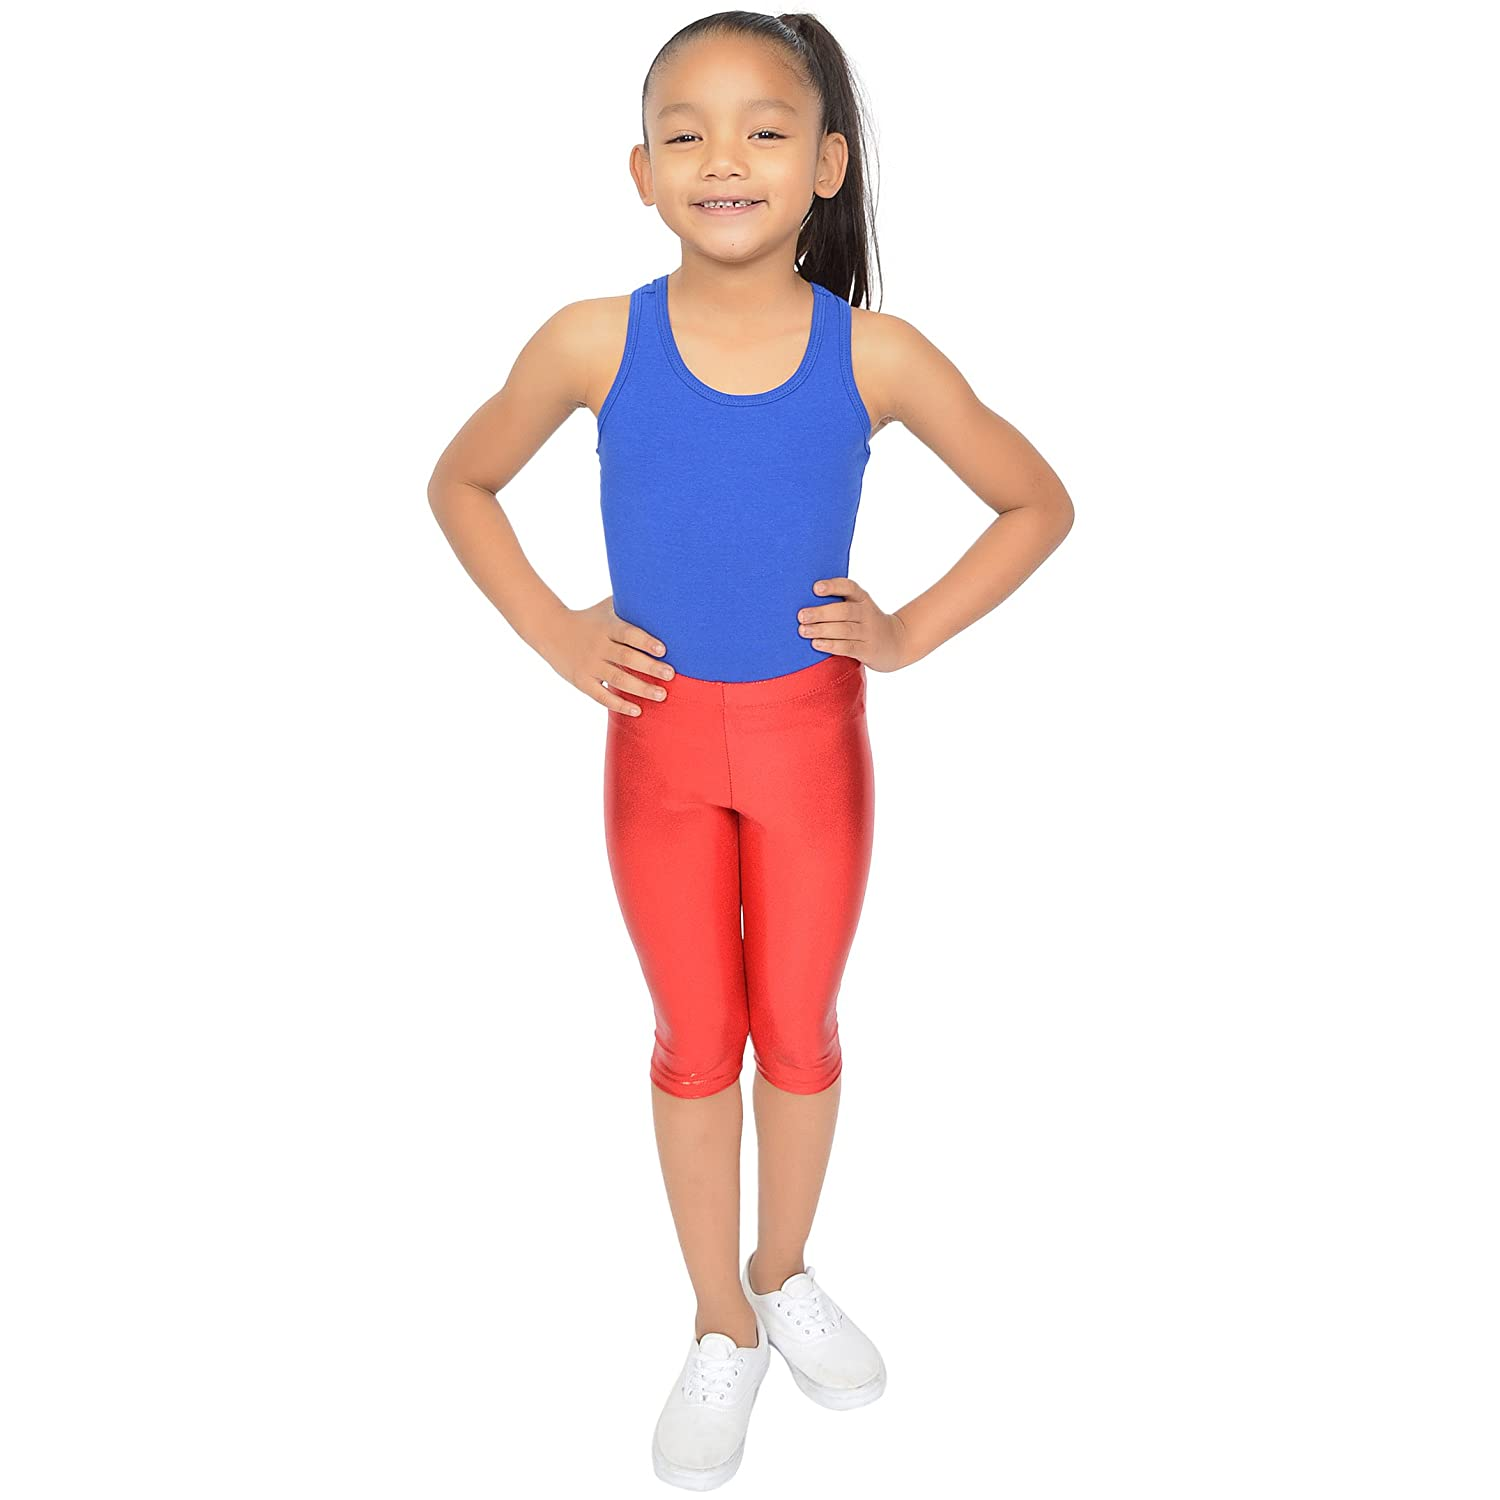 b846f2b2a Amazon.com: Stretch is Comfort Girl's Metallic Mystique Capri Leggings:  Clothing